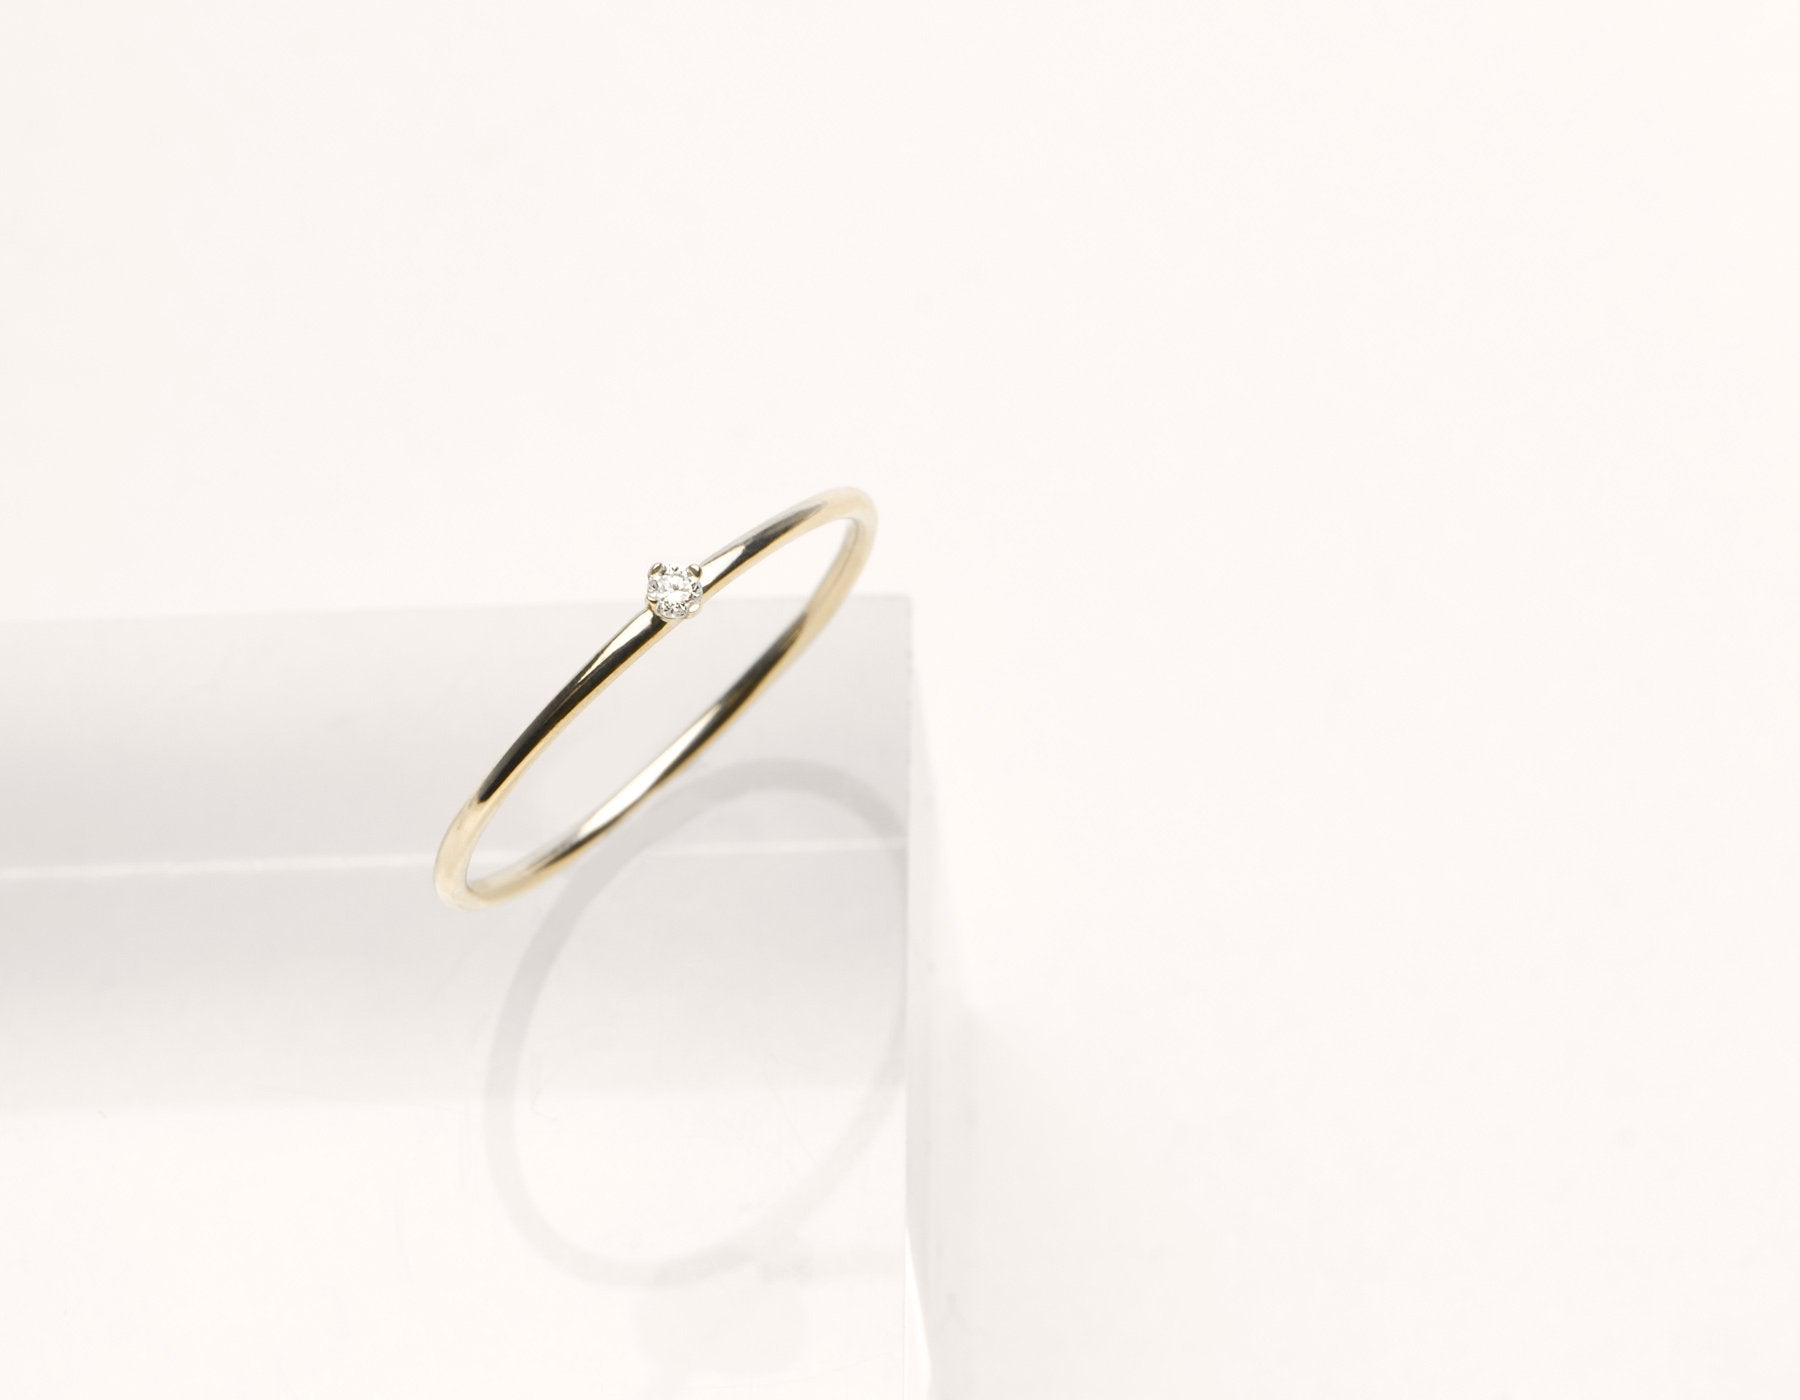 Modern minimalist Round White Diamond stacker ring Vrai & Oro 14k solid gold, 14K Yellow Gold